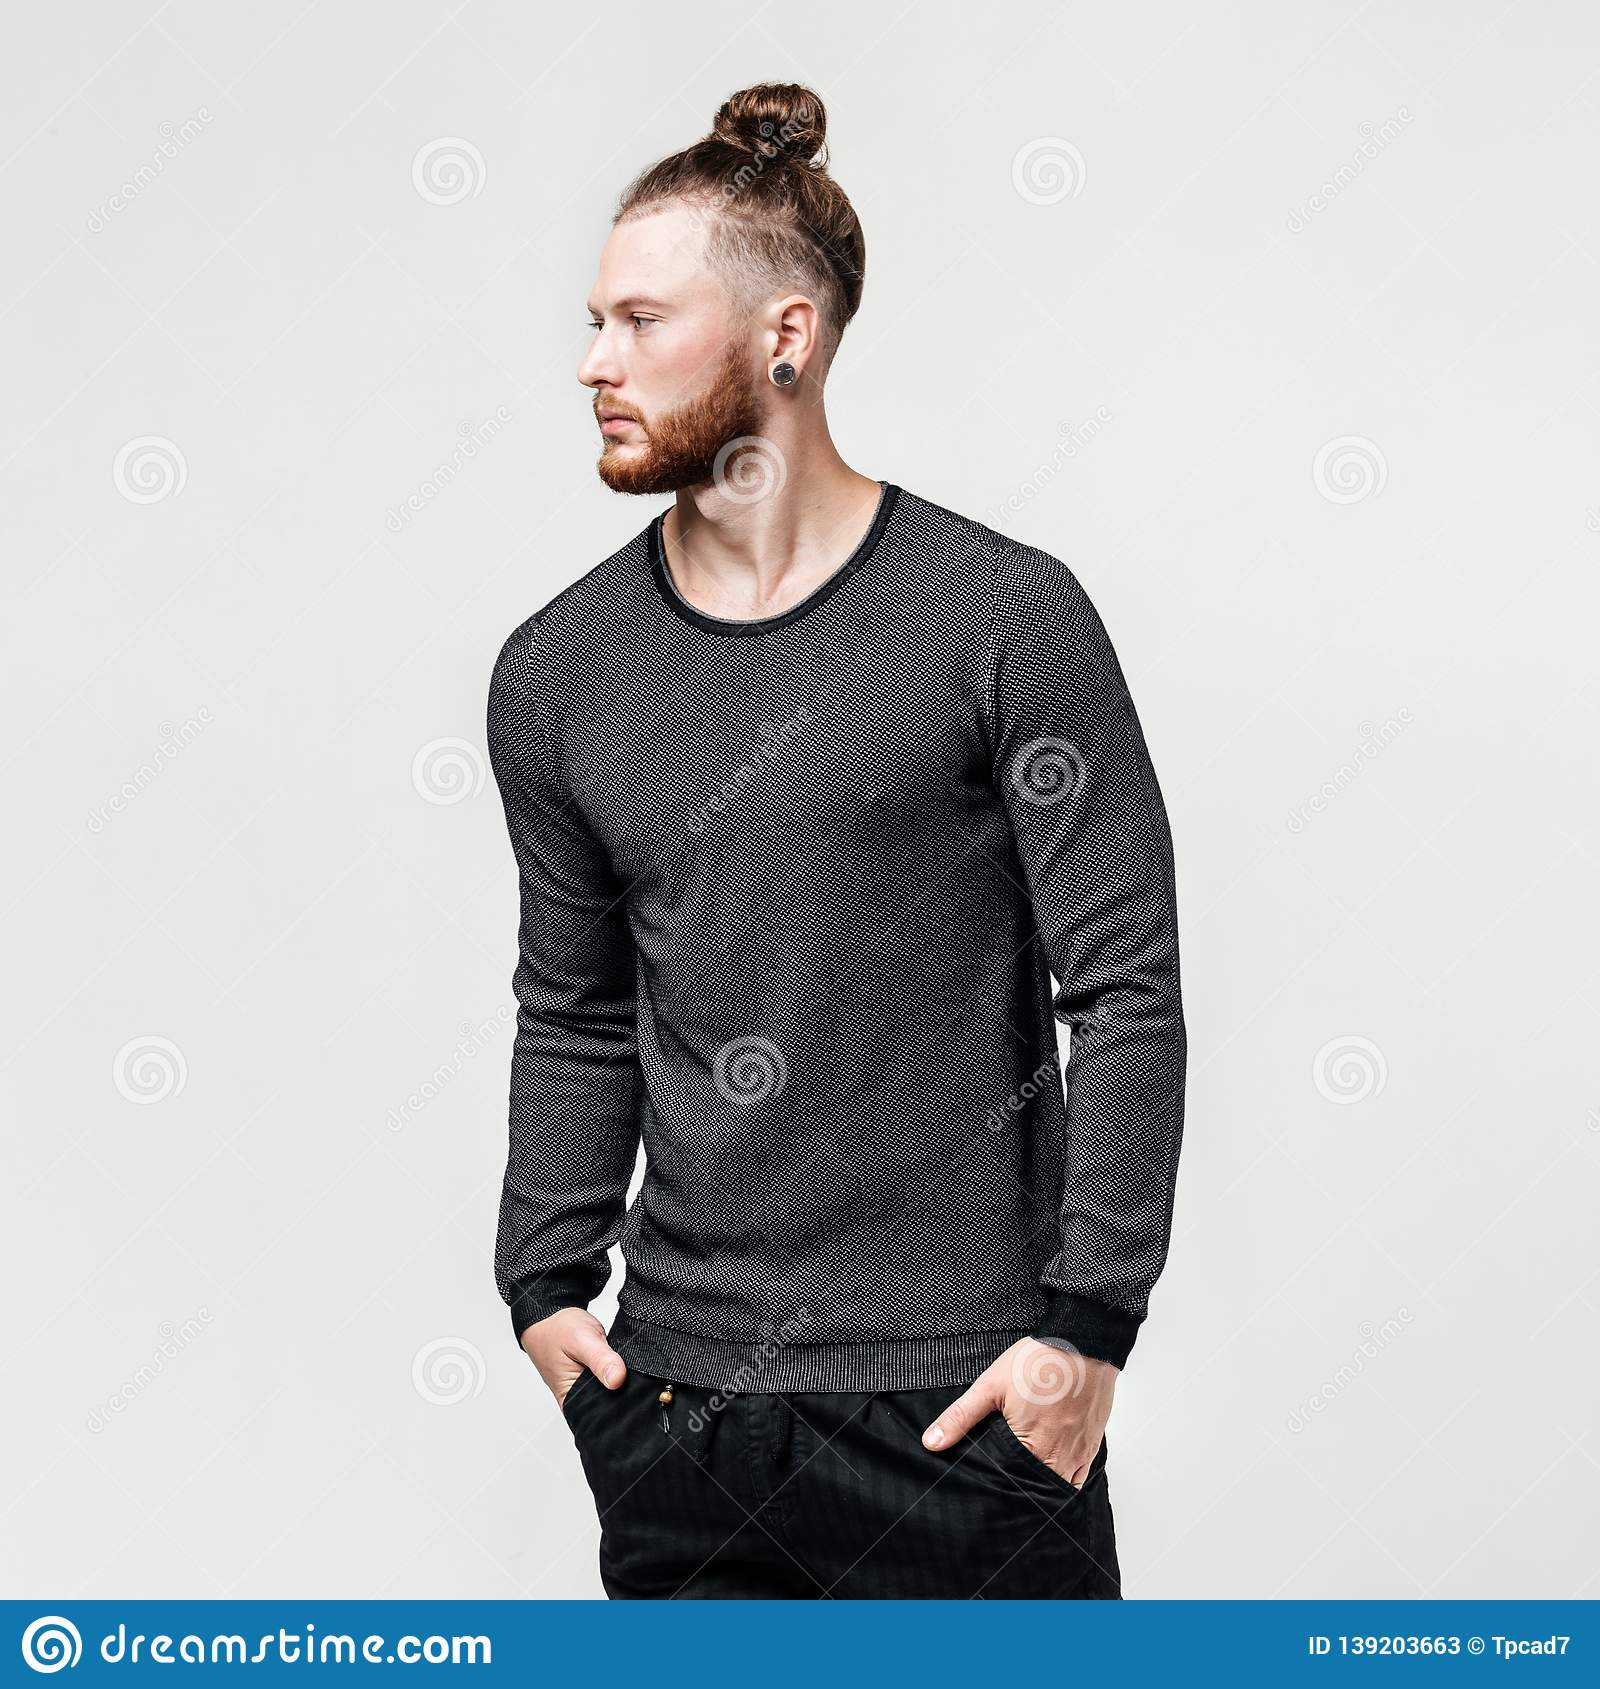 7c67b0fed Stylish young man with beard and bun hairstyle wearing a gray jumper and  black trousers poses in the studio on the white background .